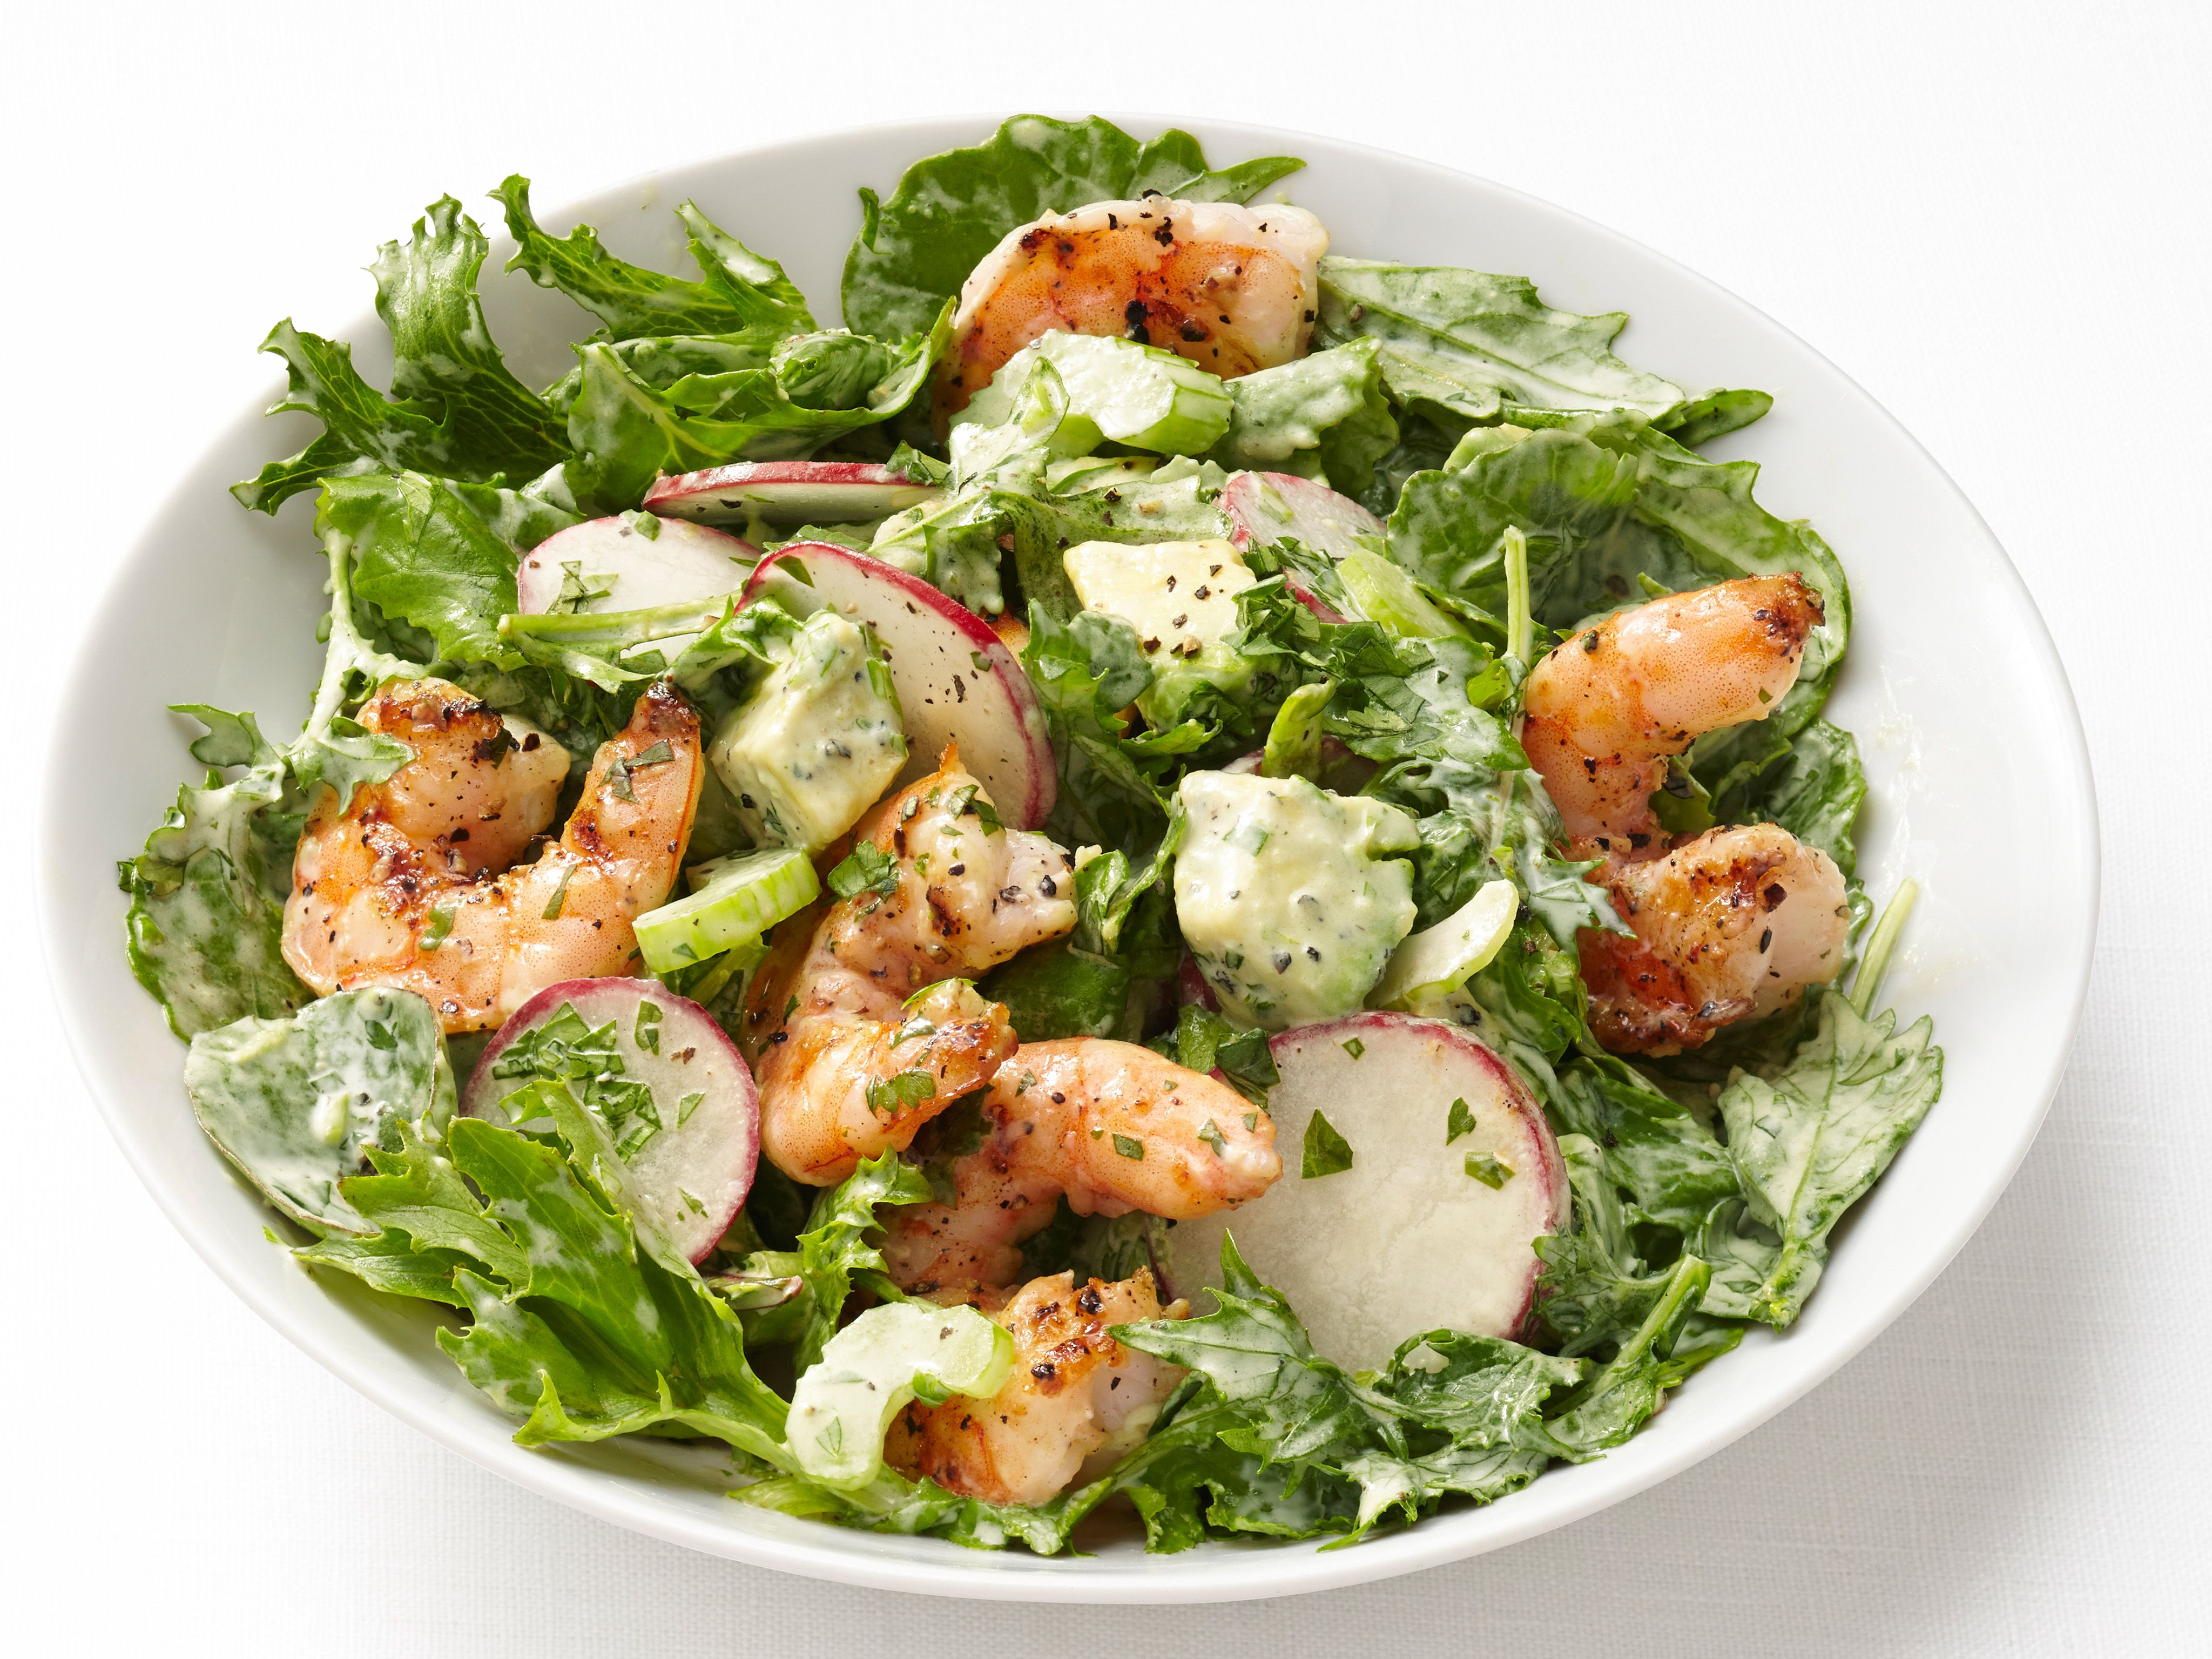 Shrimp and avocado salad recipe avocado salad recipes avocado shrimp and avocado salad satisfying fast cooking shrimp are the ultimate weeknight salad topper via food network forumfinder Gallery